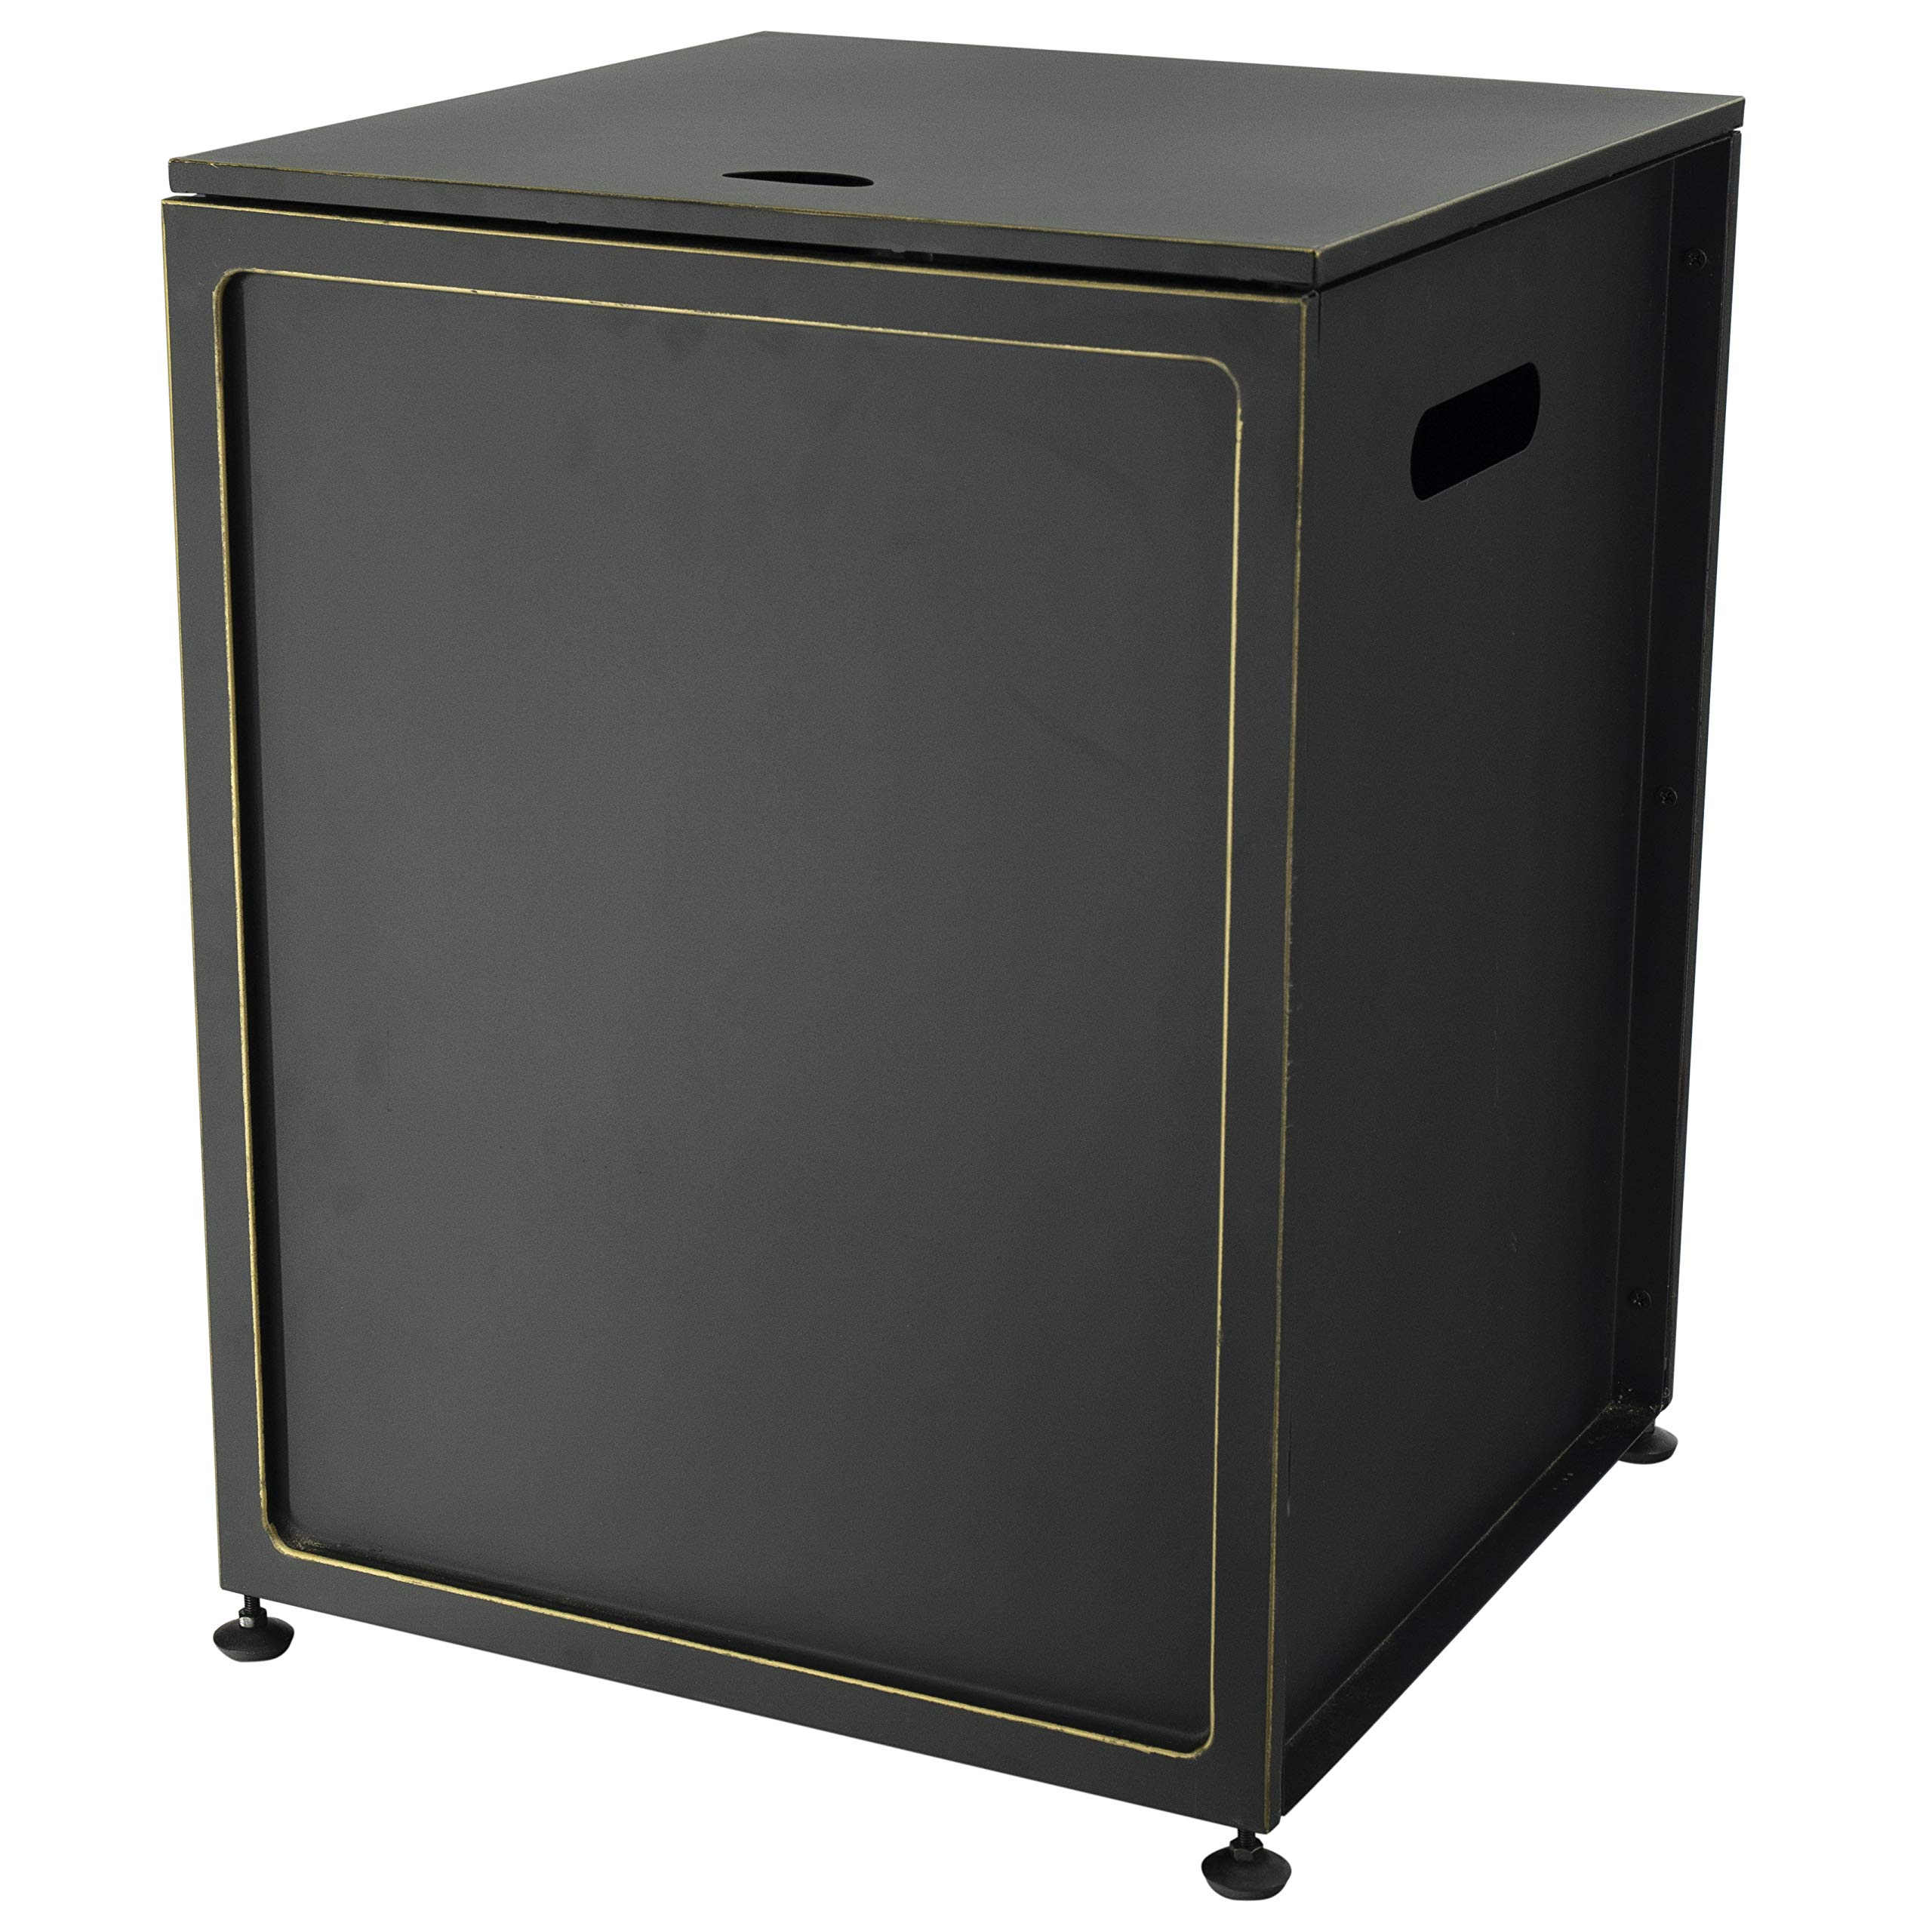 Bond Manufacturing 67635 Cover Hideaway Table for Gas Fire Pits, Suitable for Any 20lb Propane Tanks, Black by Bond Manufacturing